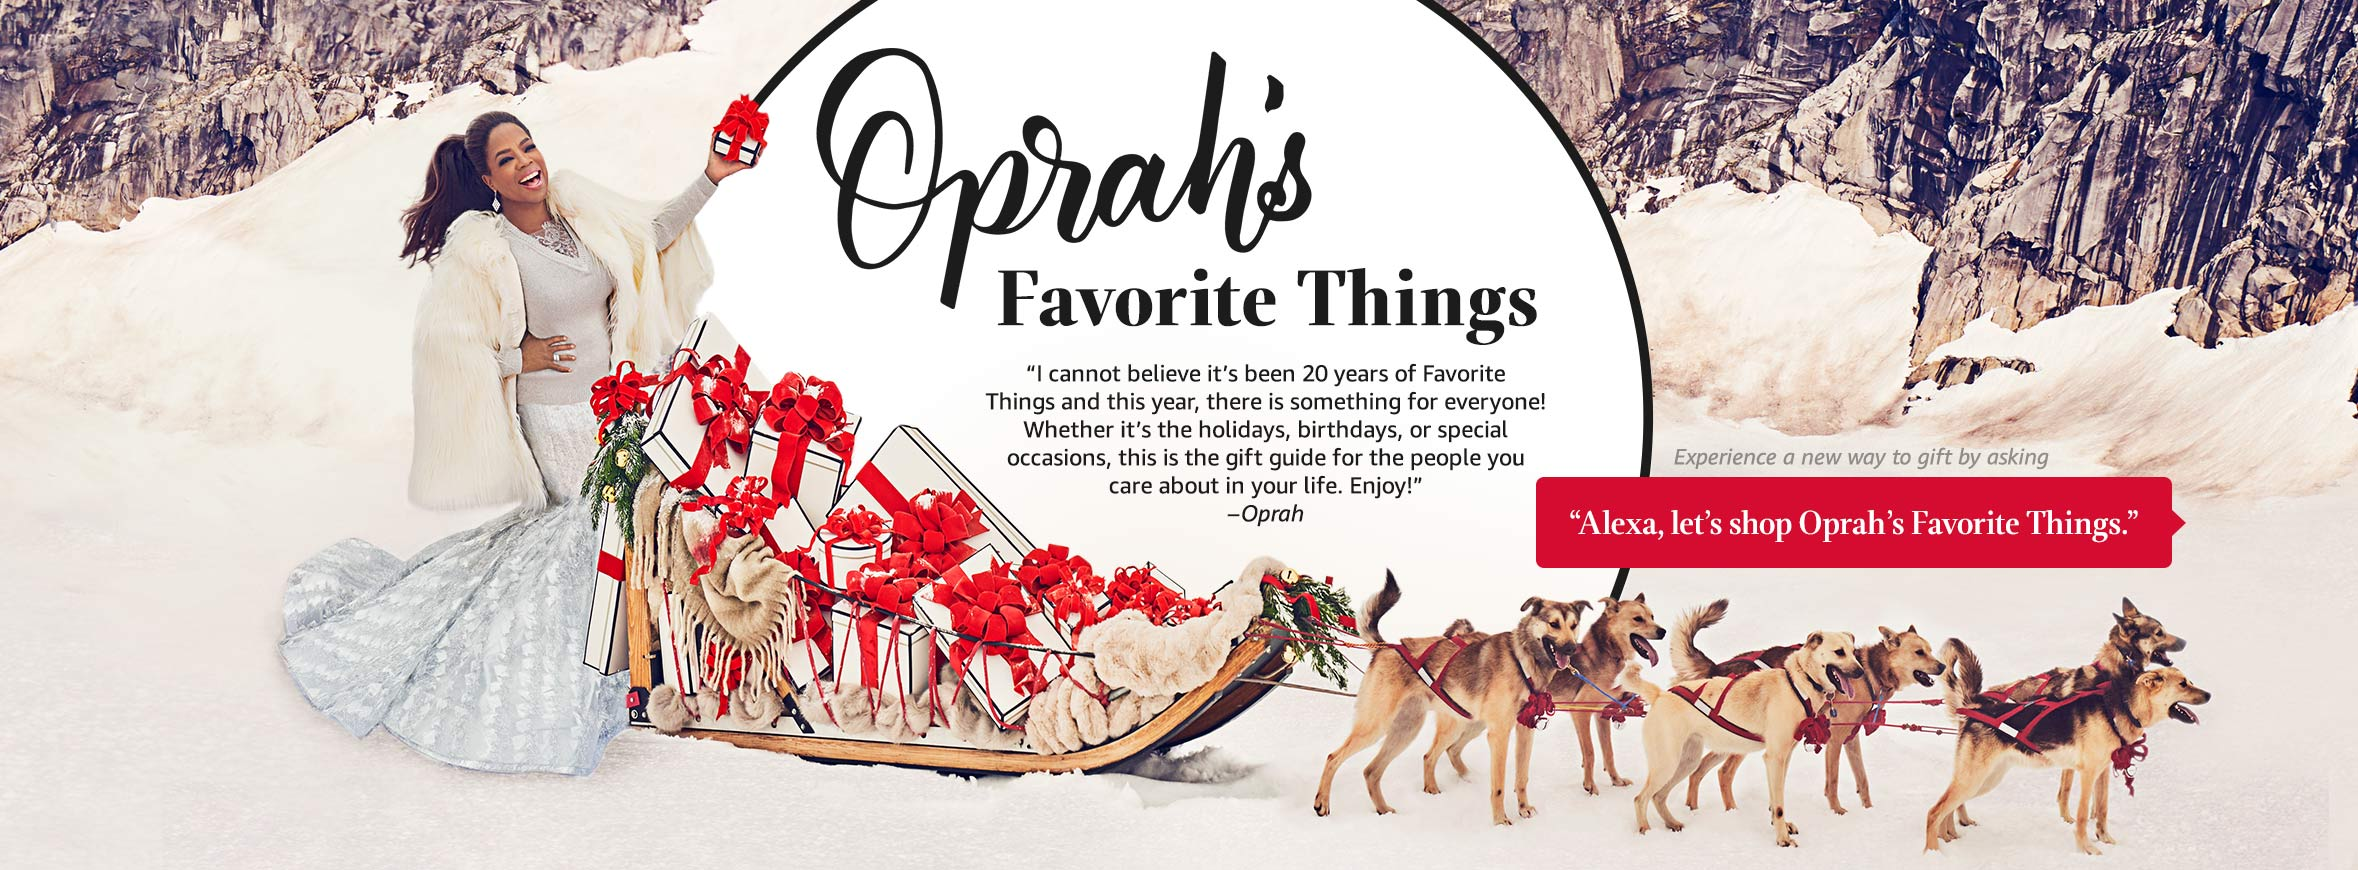 Oprah's Favorite Things Amazon Gift Guide